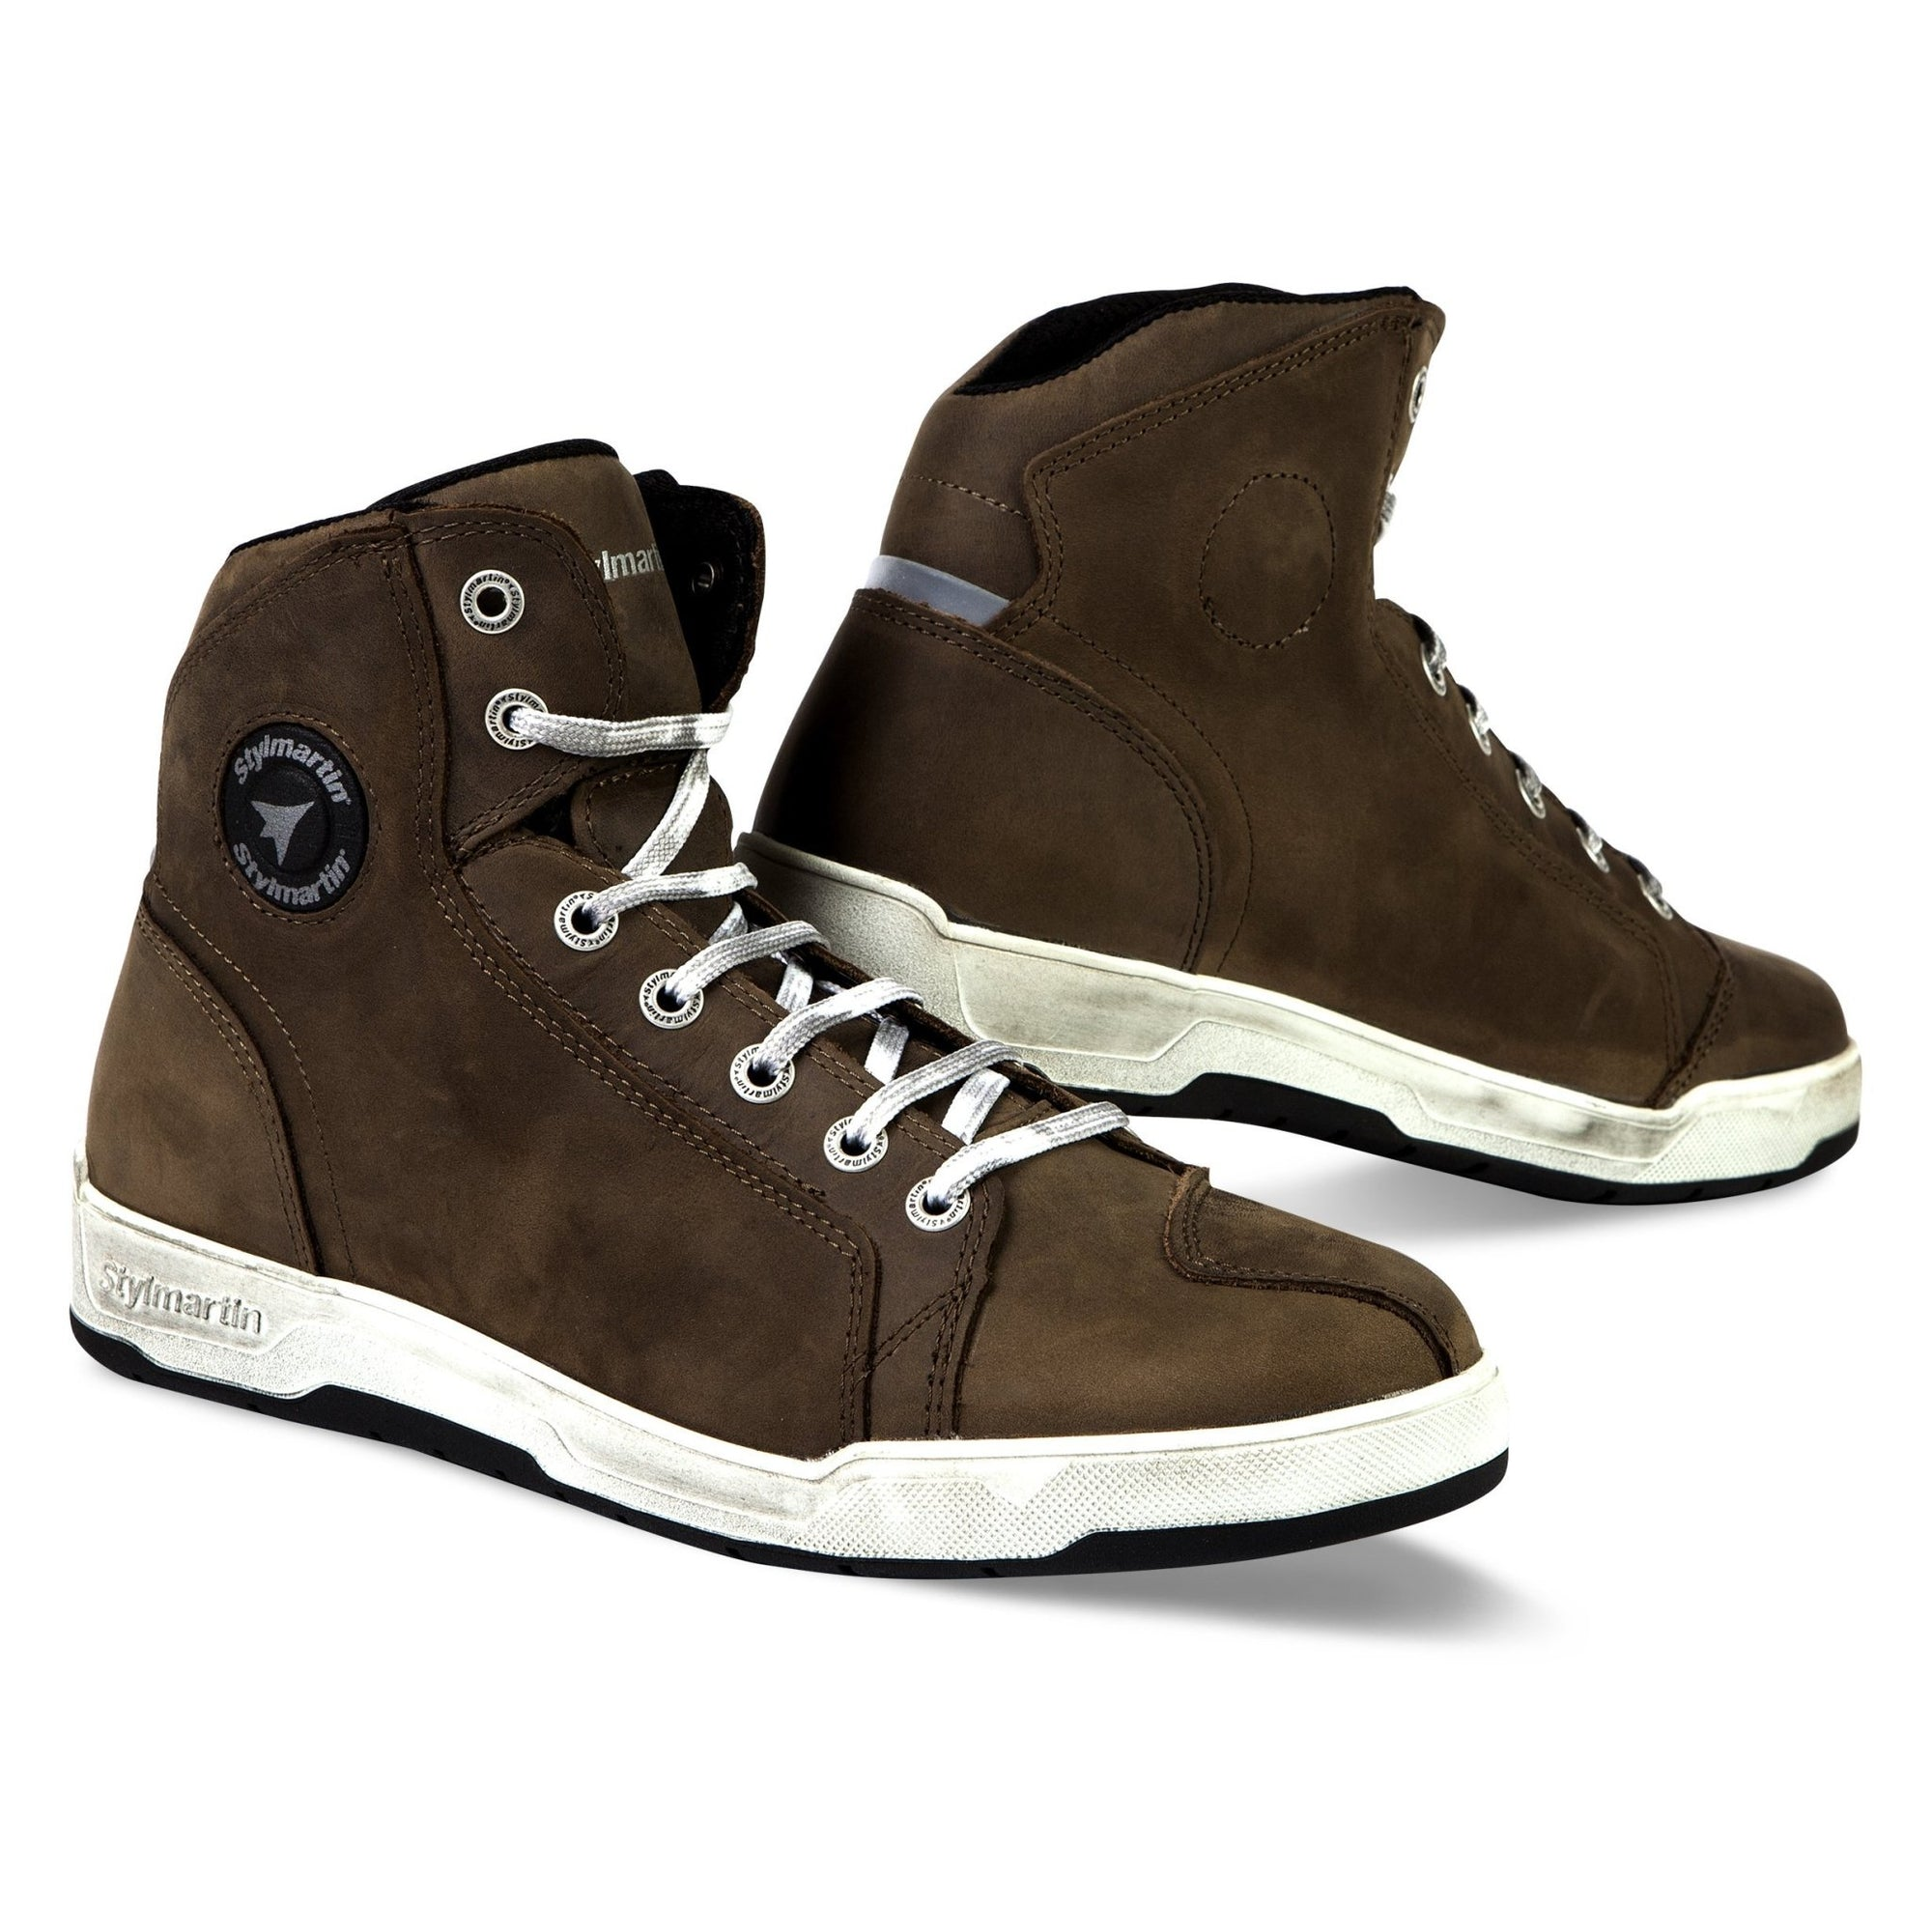 Stylmartin - Stylmartin Marshall WP Sneaker in Brown - Boots - Salt Flats Clothing